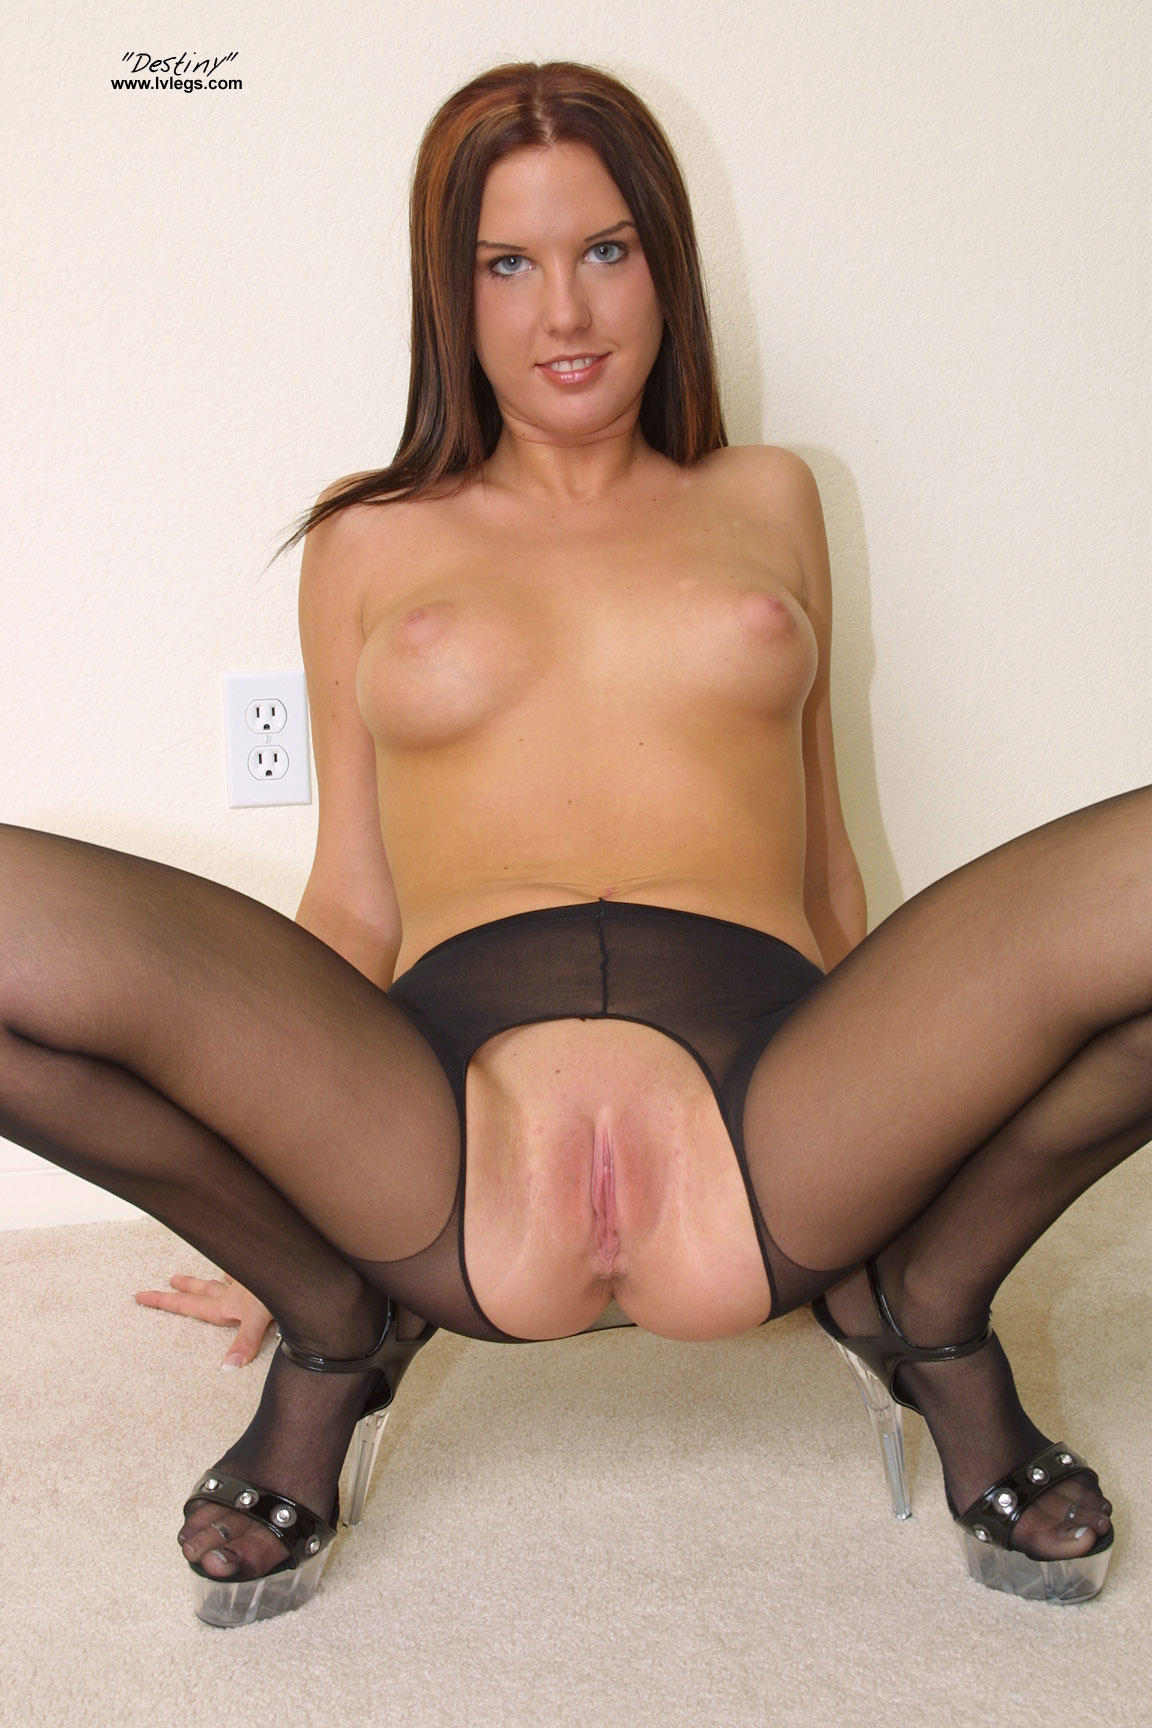 dildo-crotchless-pantyhose-porn-cute-long